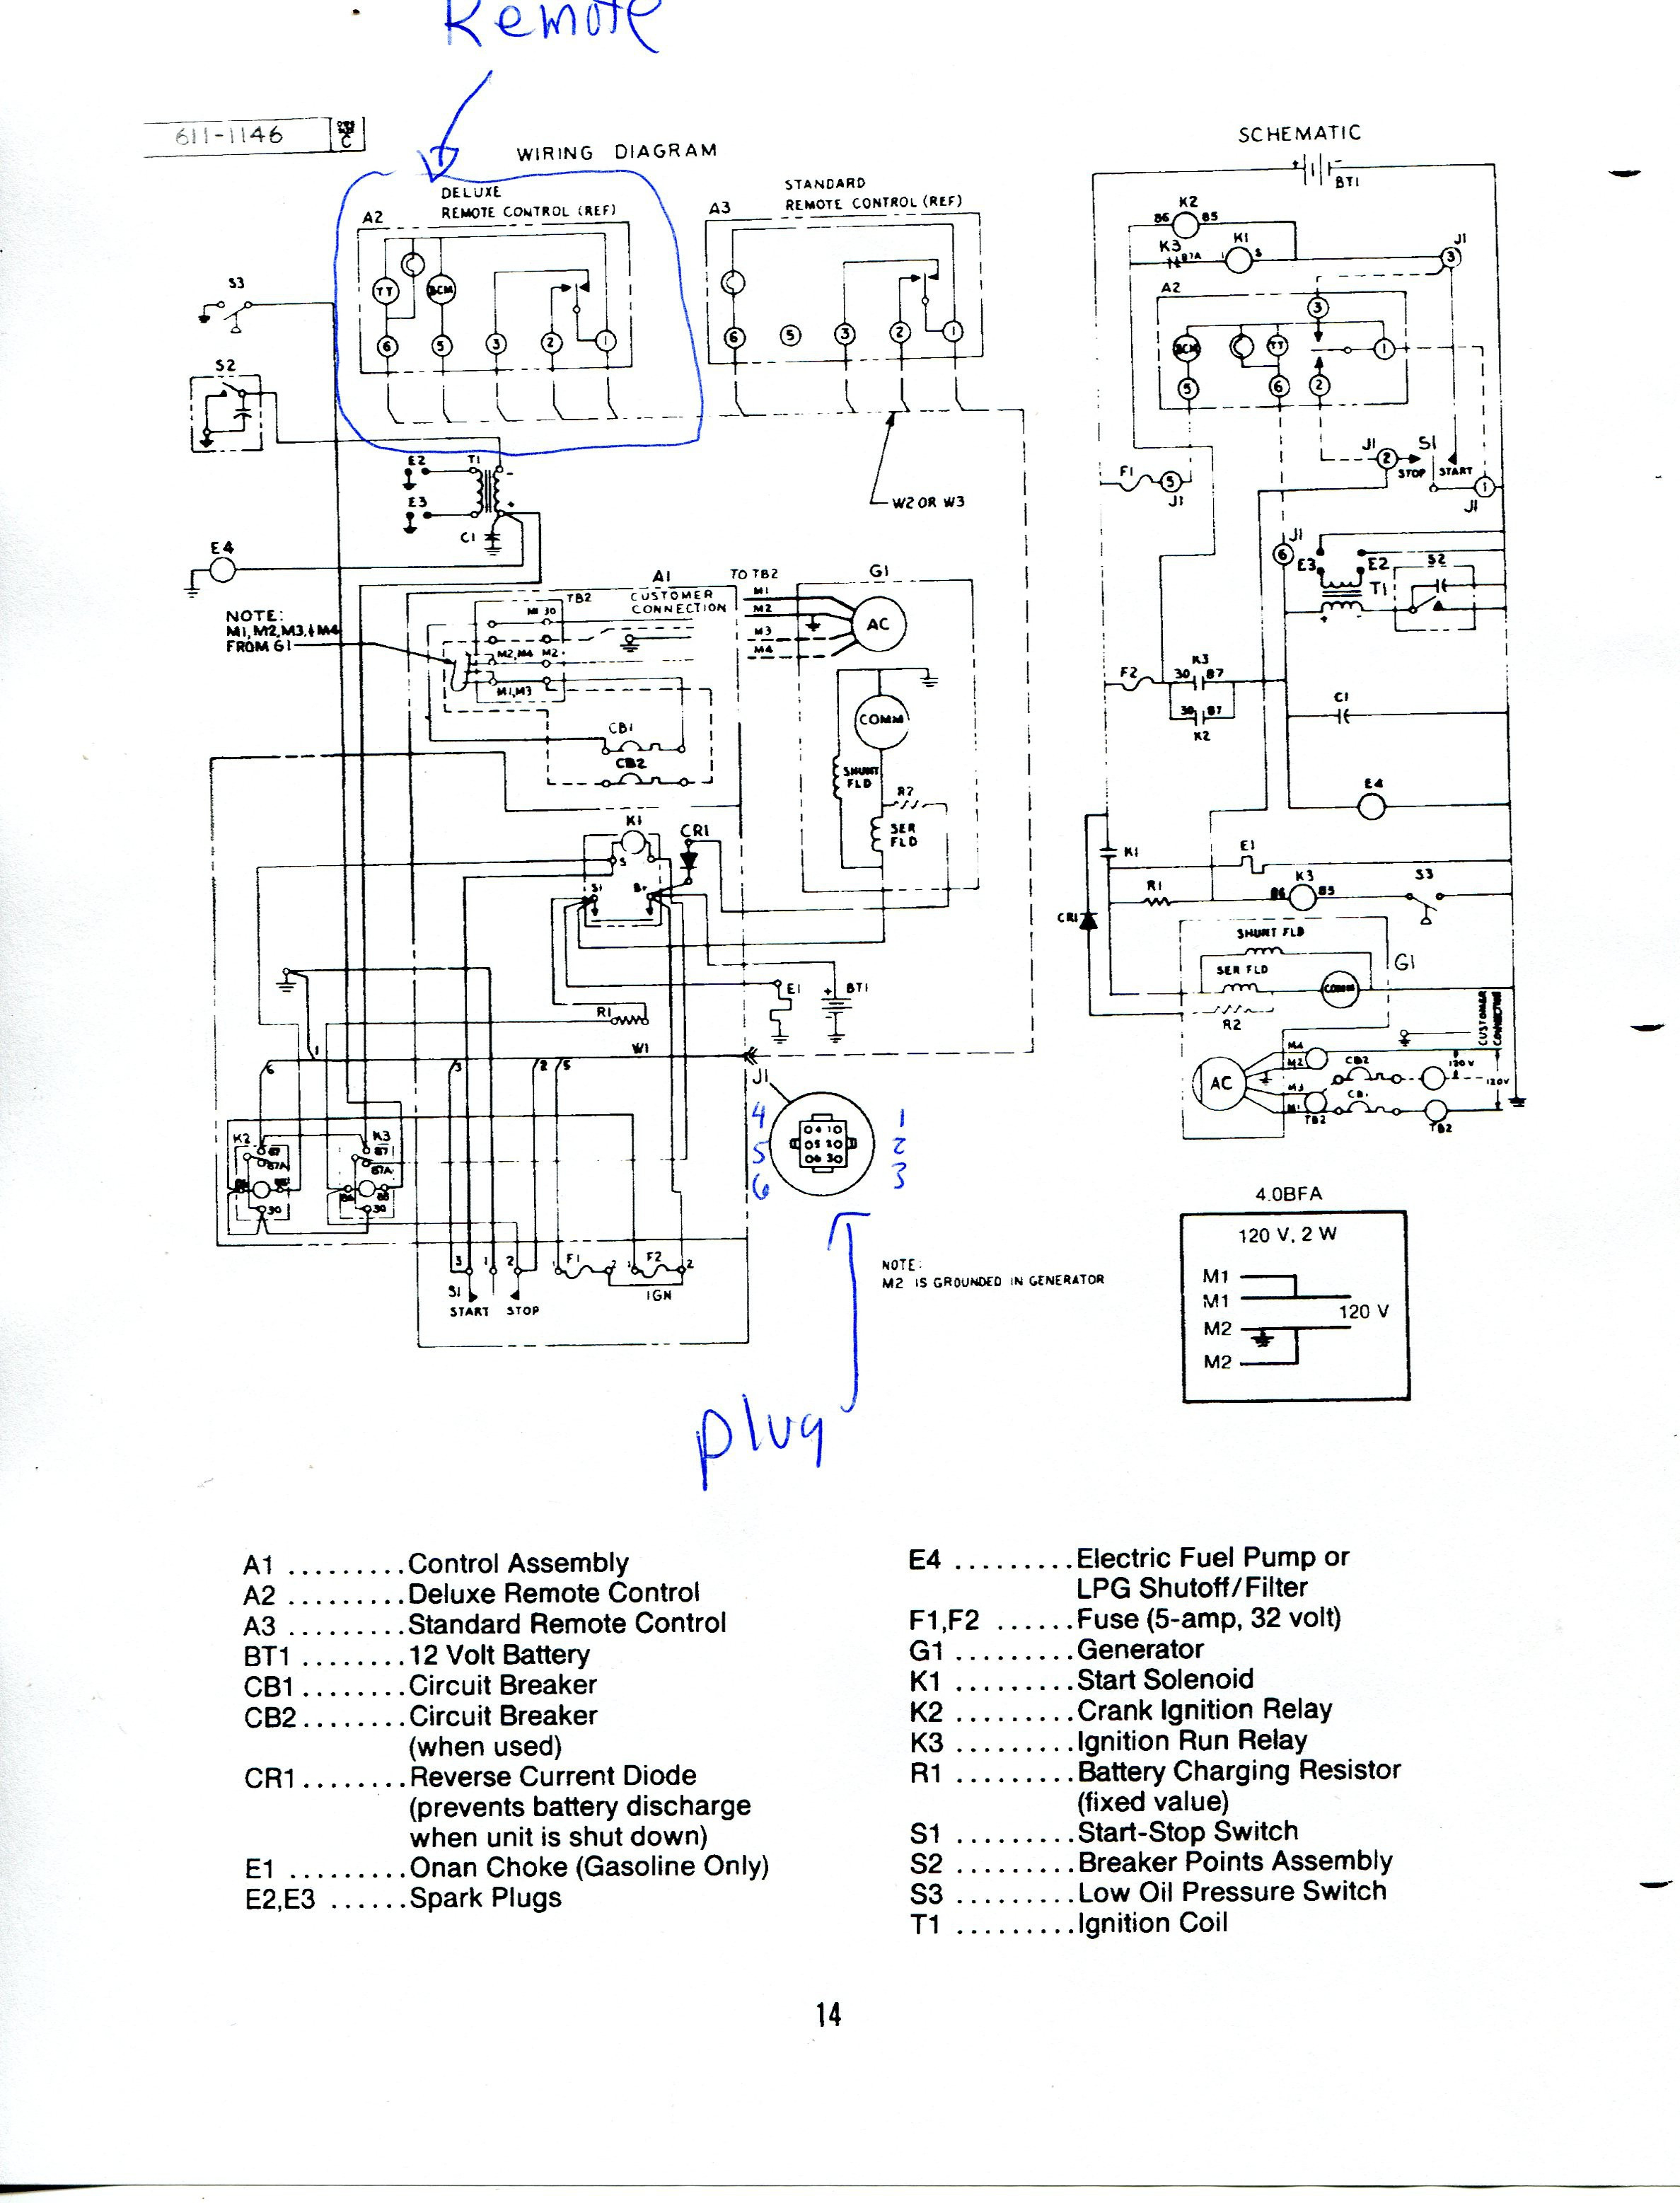 onan generator remote switch wiring diagram wiring library  onan homesite 6500 generator wiring diagram #4